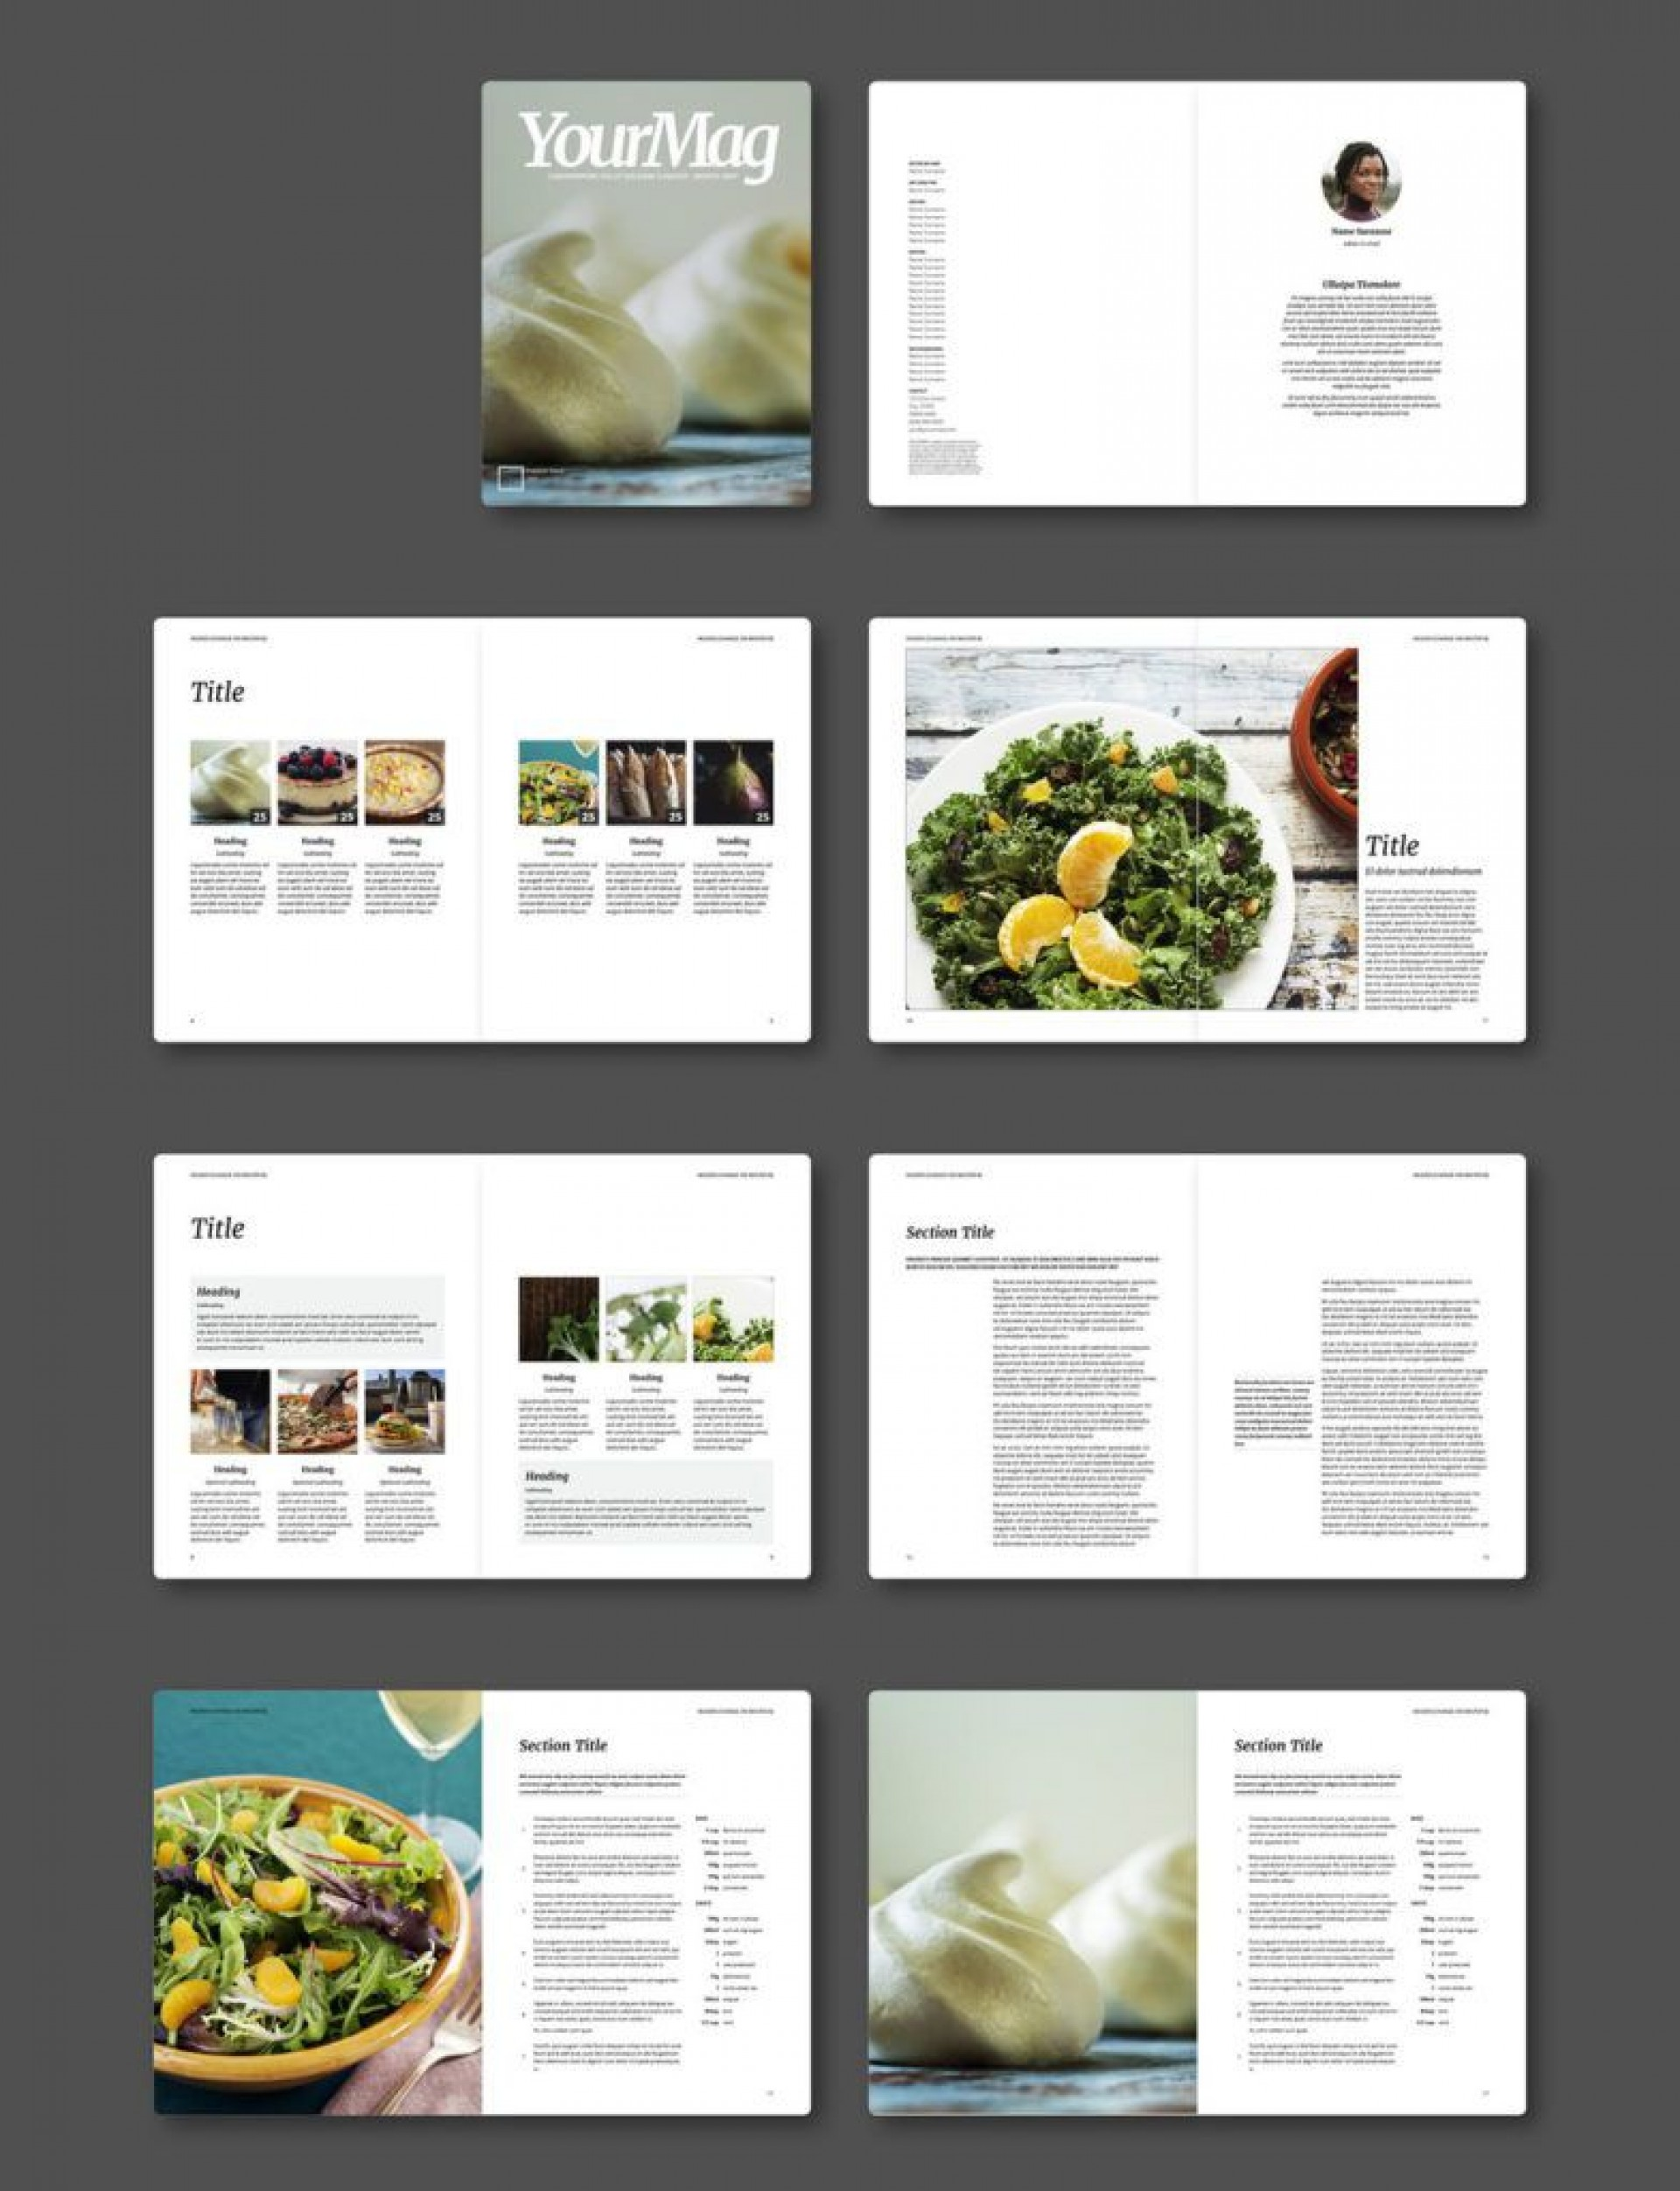 001 Awful Indesign Magazine Template Free High Def  Cover Download Indd Cs51920